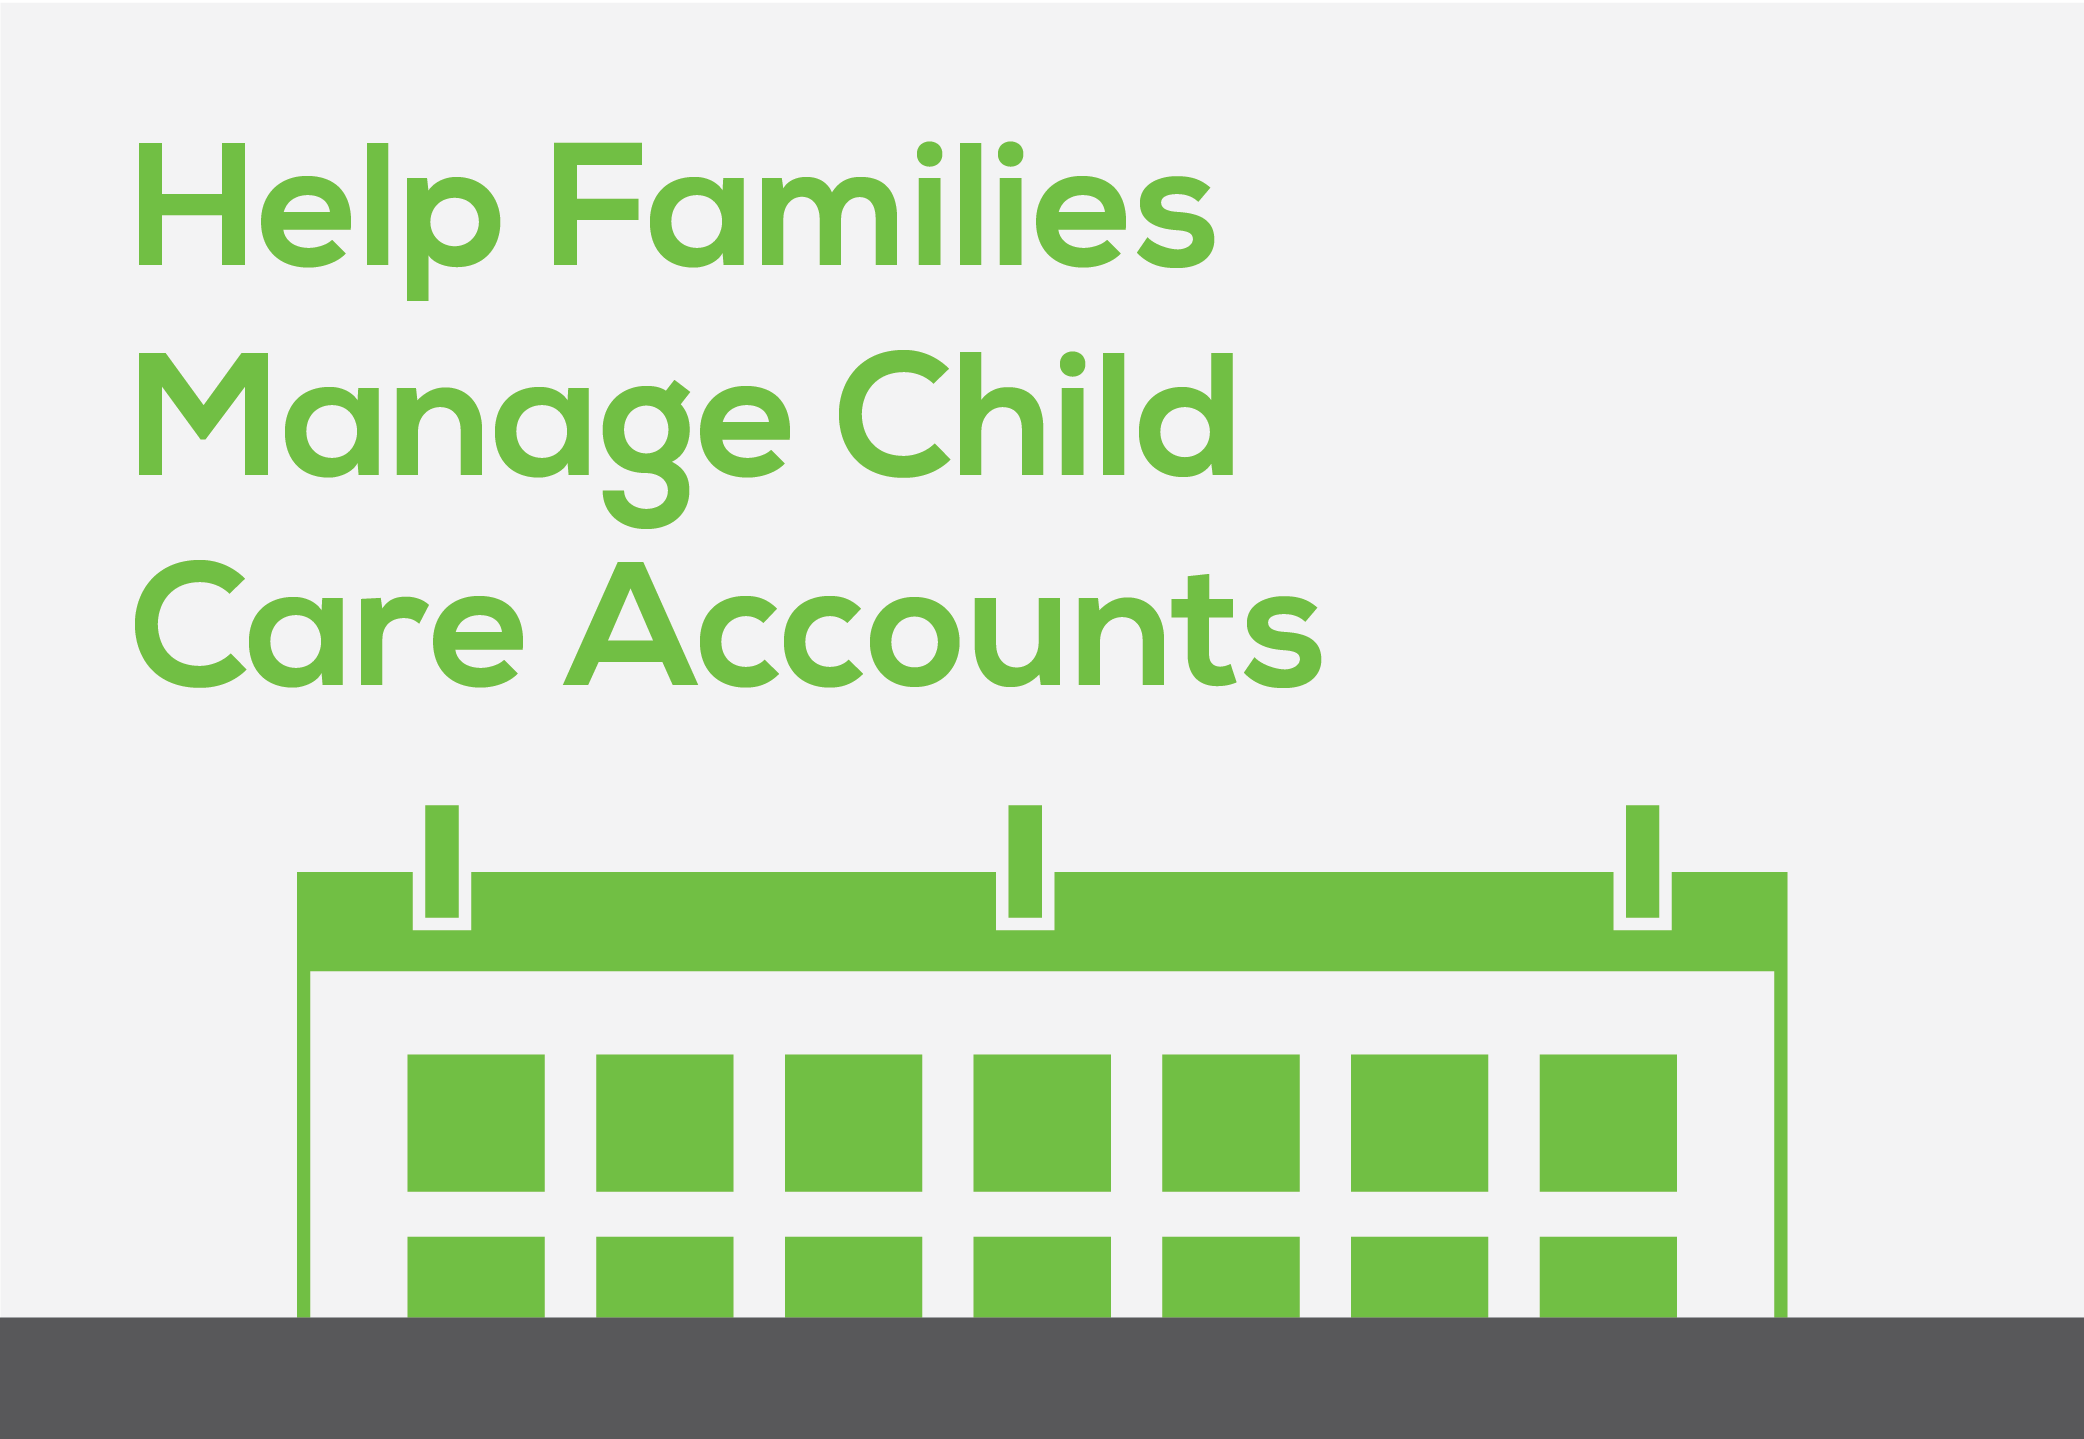 Help families manage child care accounts